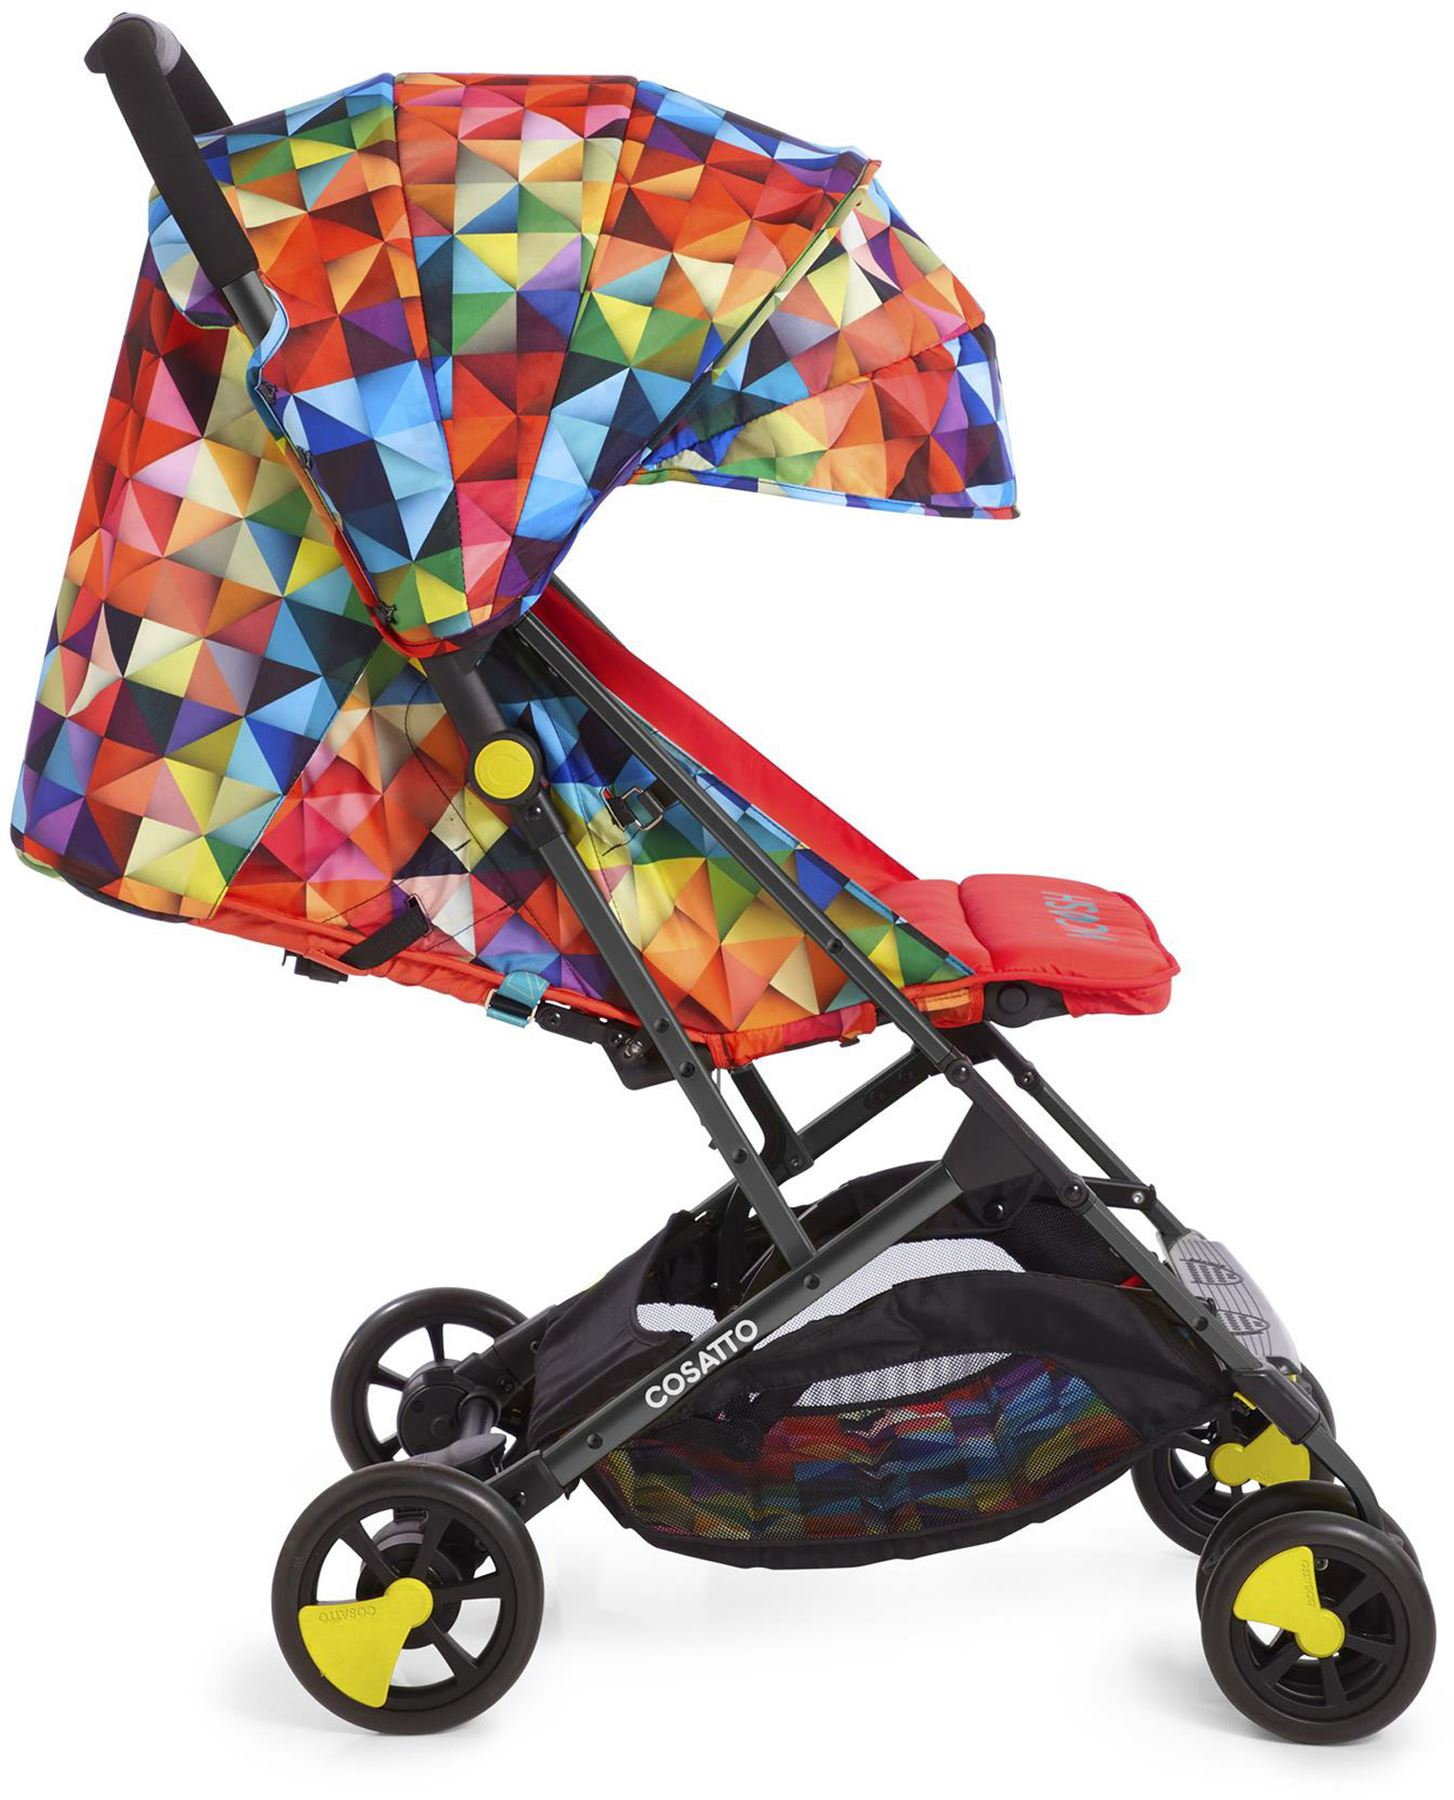 Buggy Stroller India Details About Cosatto Woosh Stroller Spectroluxe Child Pushchair Buggy Pram New